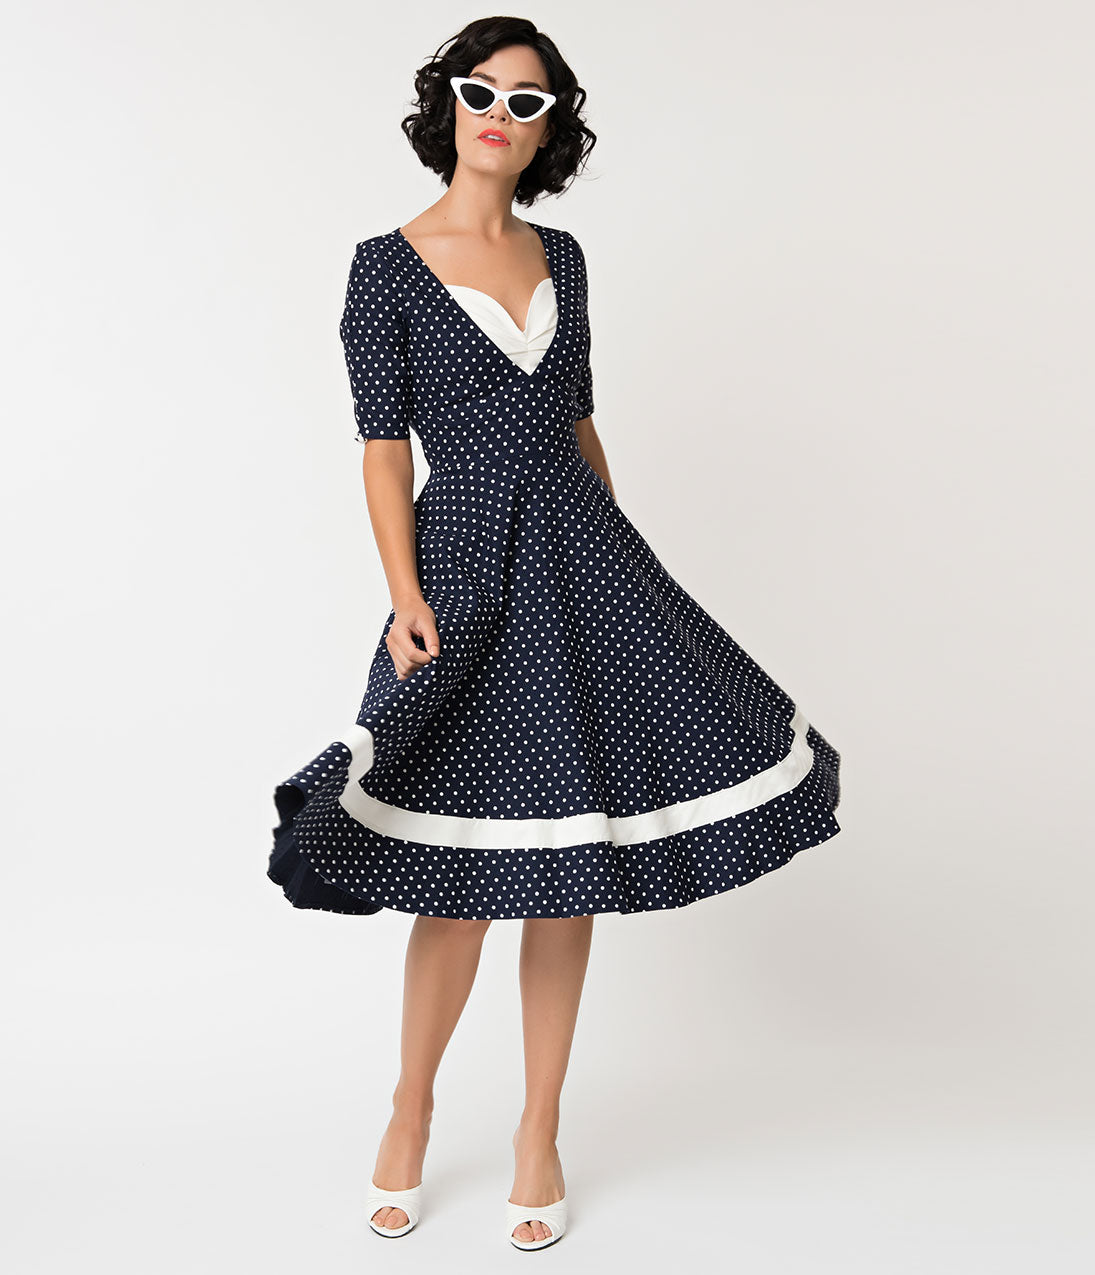 1950s Swing Dresses | 50s Swing Dress Unique Vintage 1950S Style Navy  White Dotted Sleeved Serena Swing Dress $74.00 AT vintagedancer.com